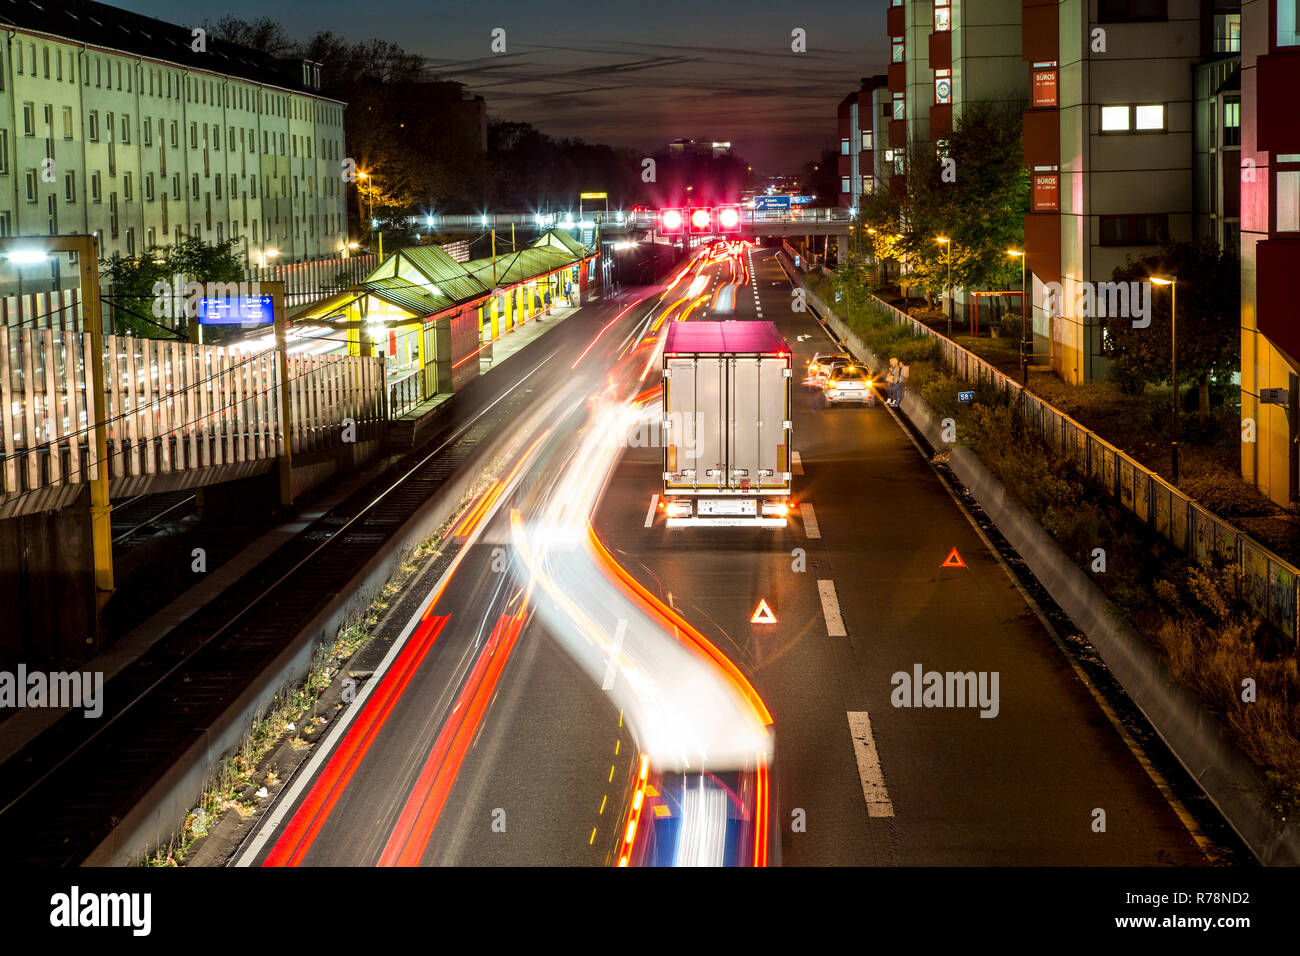 Collision on the A40, Ruhrschnellweg, truck blocking the center lane, city limits, Essen, North Rhine-Westphalia, Germany Stock Photo